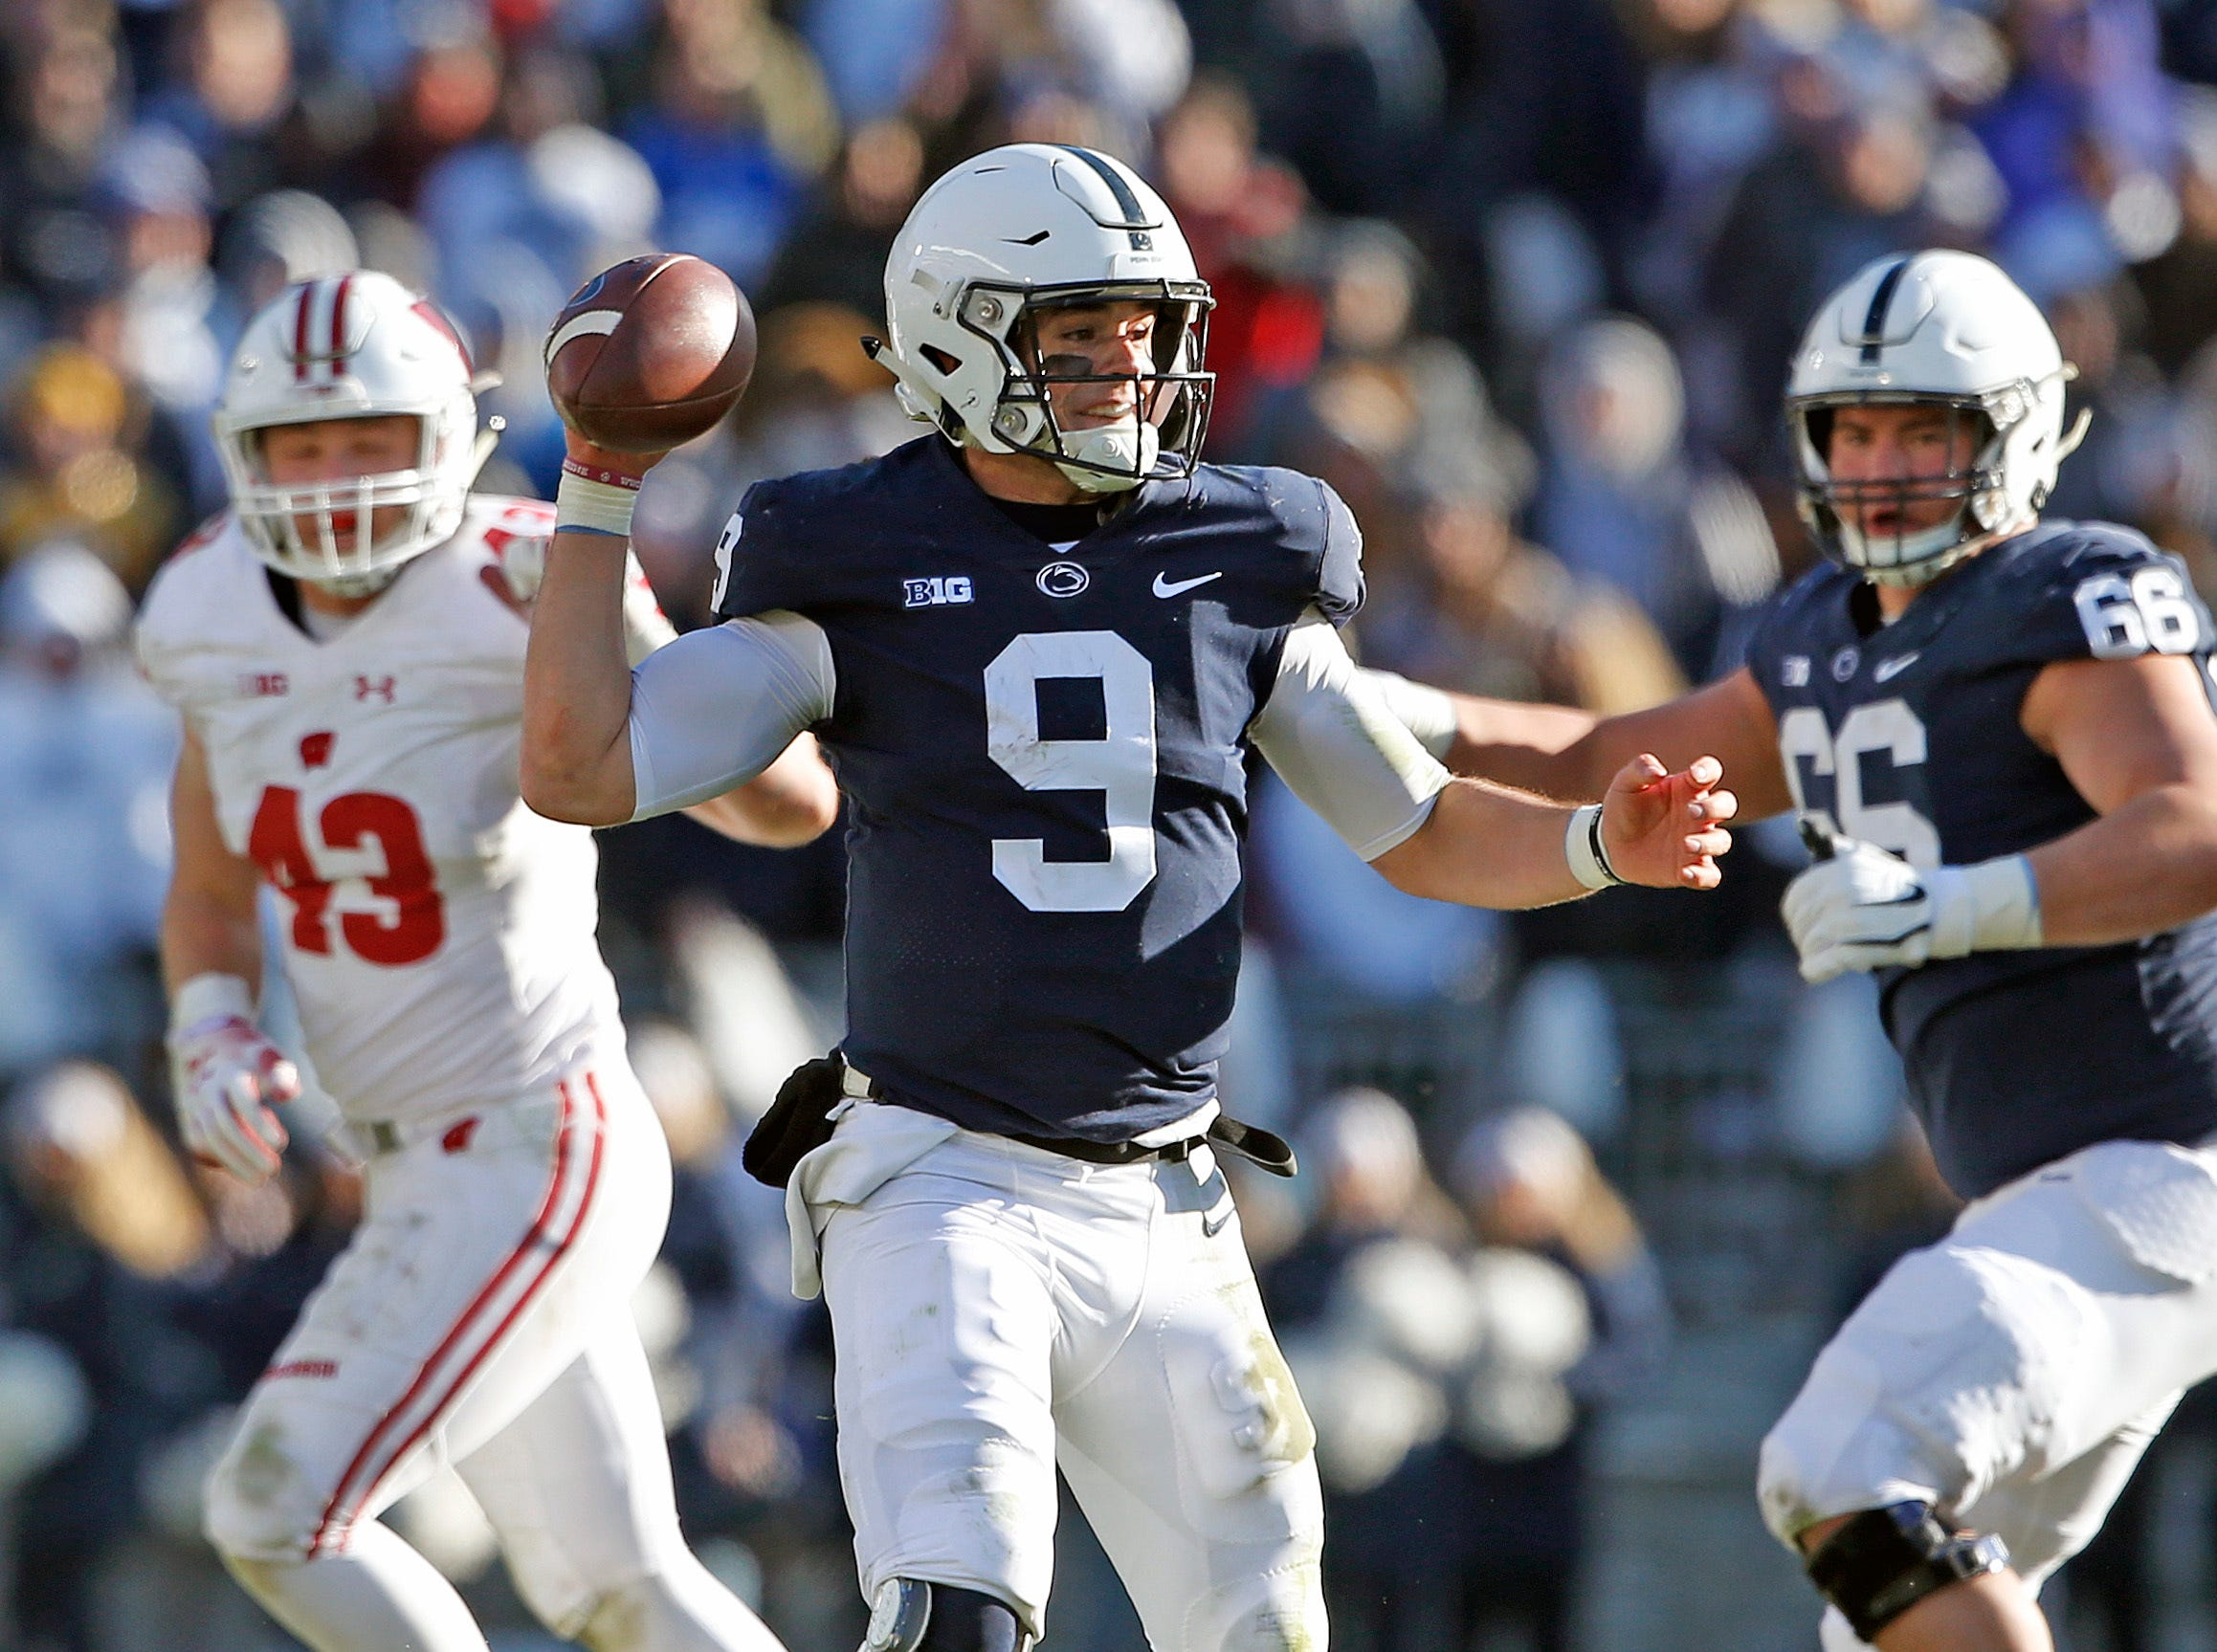 Defense drives yet another ugly Penn State victory, Rutgers the willing victim